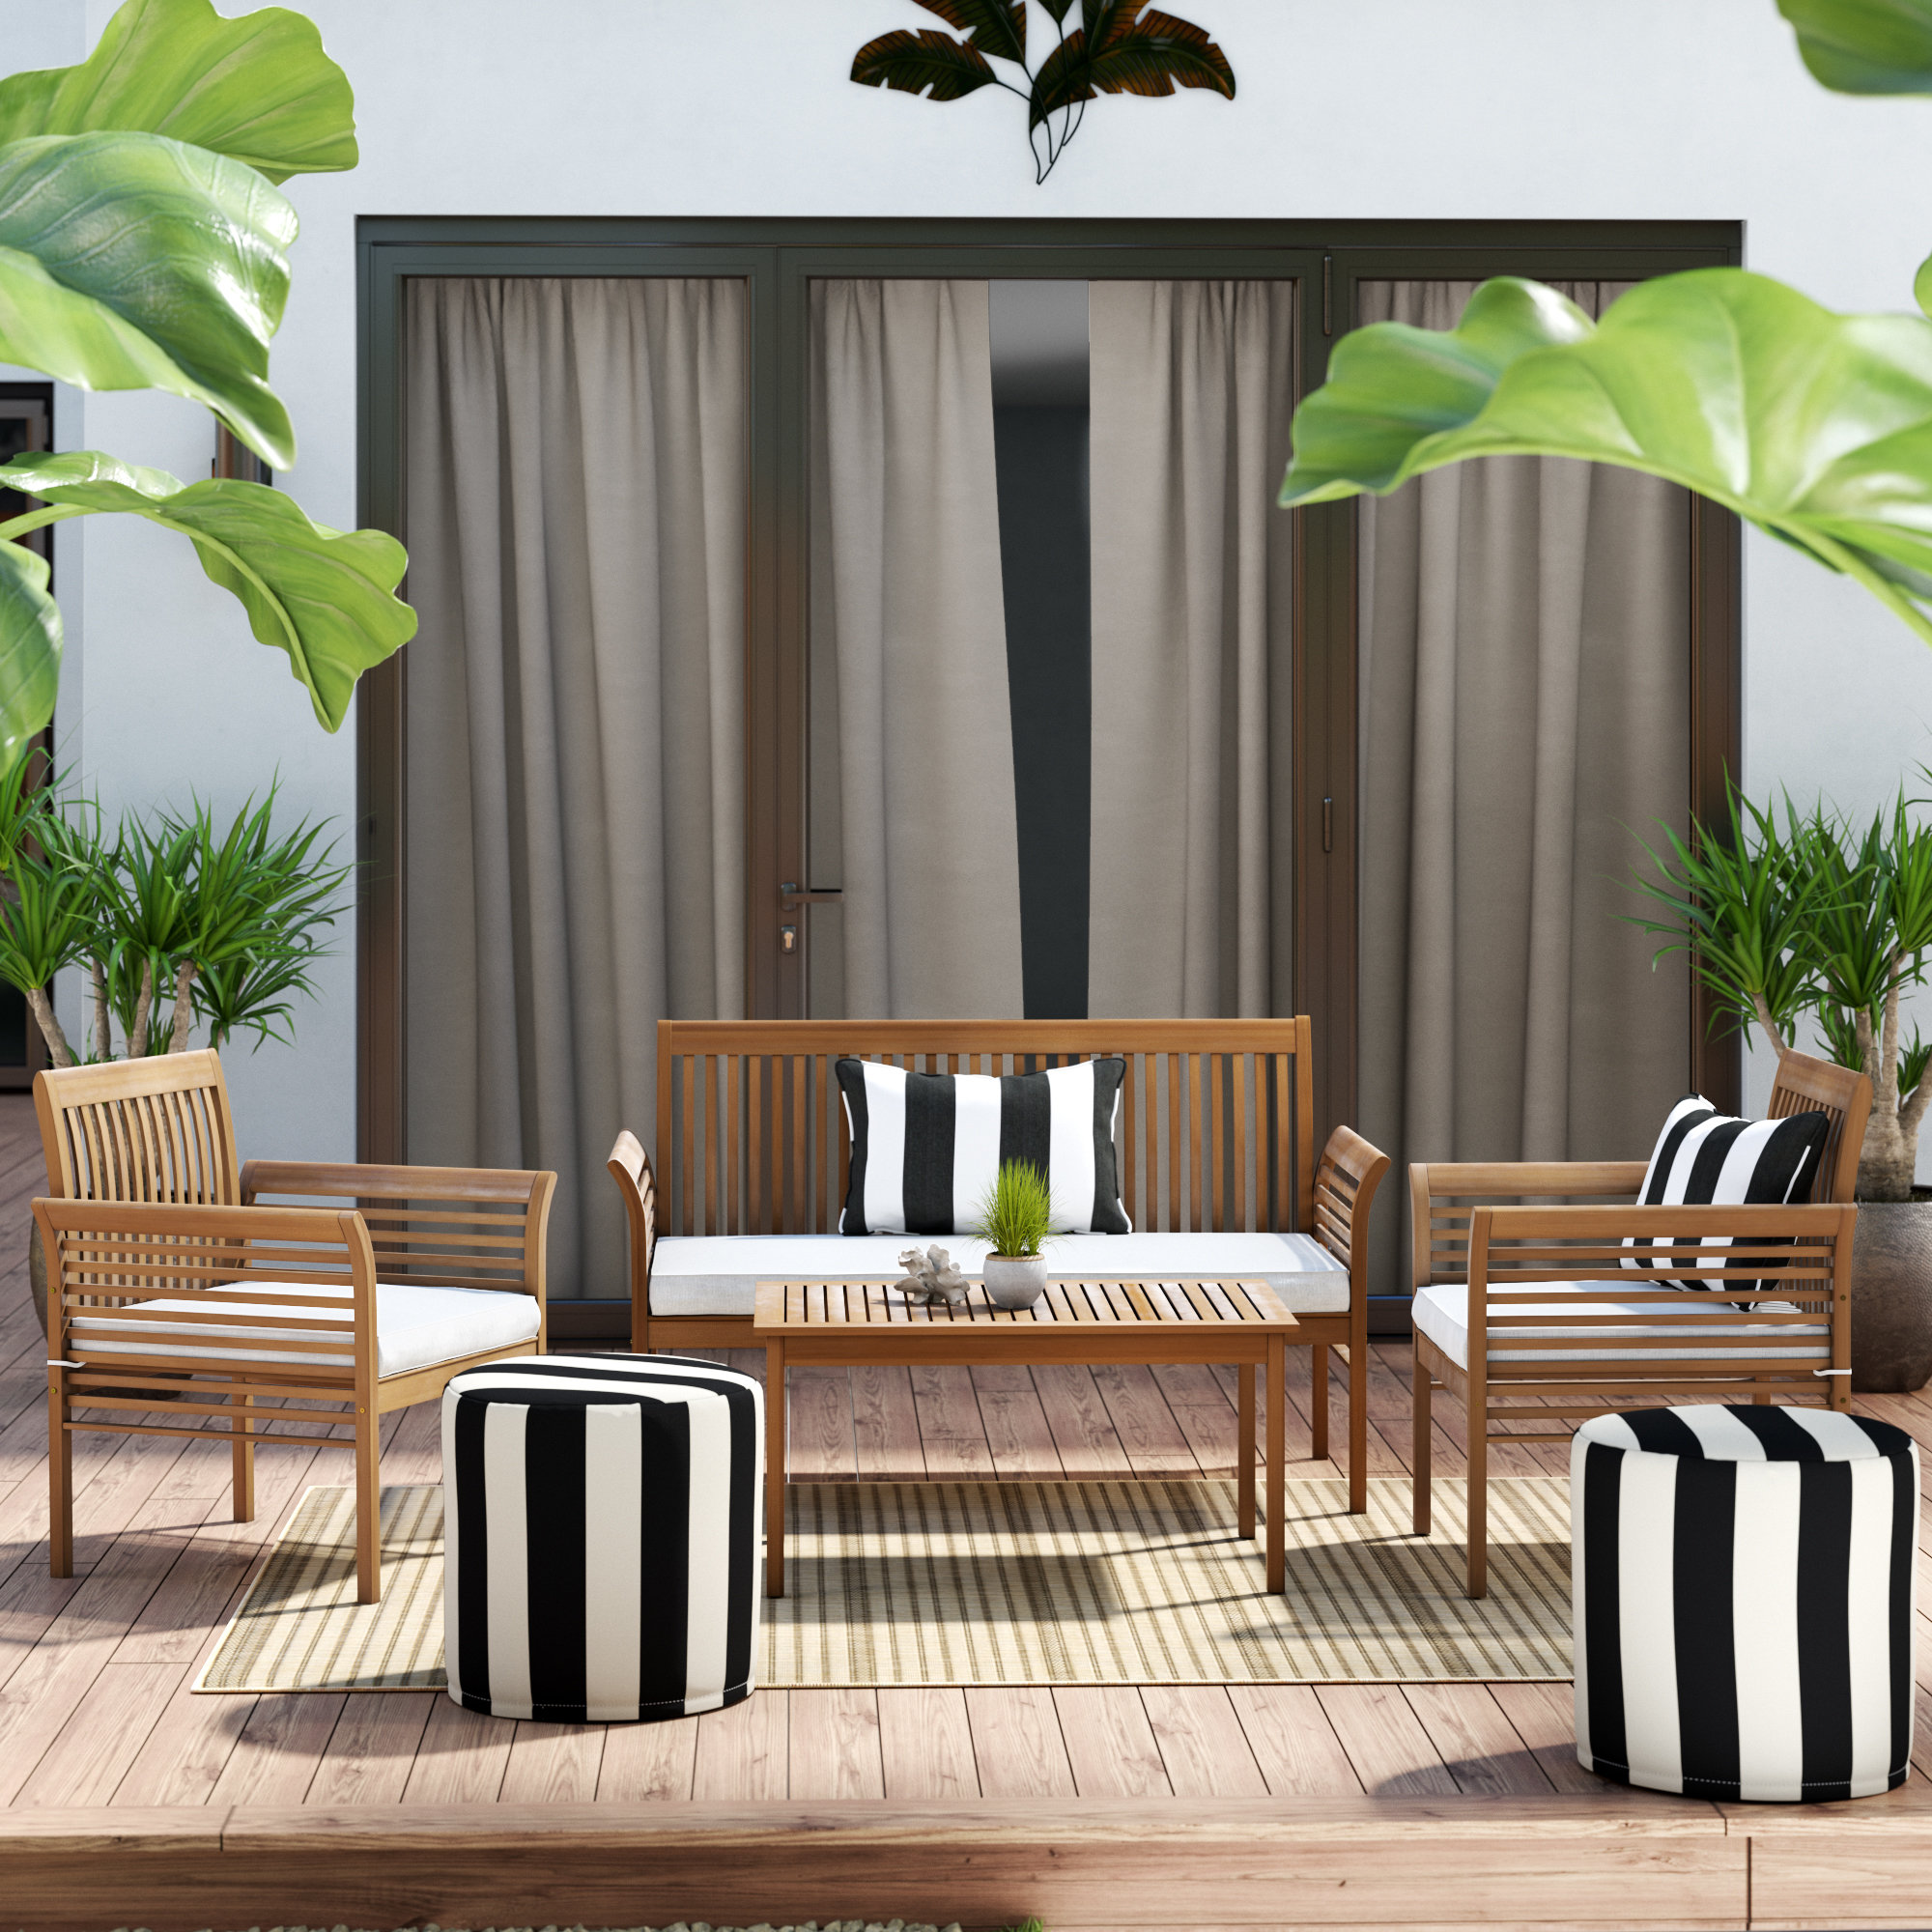 person patio conversation sets you love glynn piece sofa set with cushions round metal accent table quickview wooden threshold bar grey marble top dark wood and coffee chairside